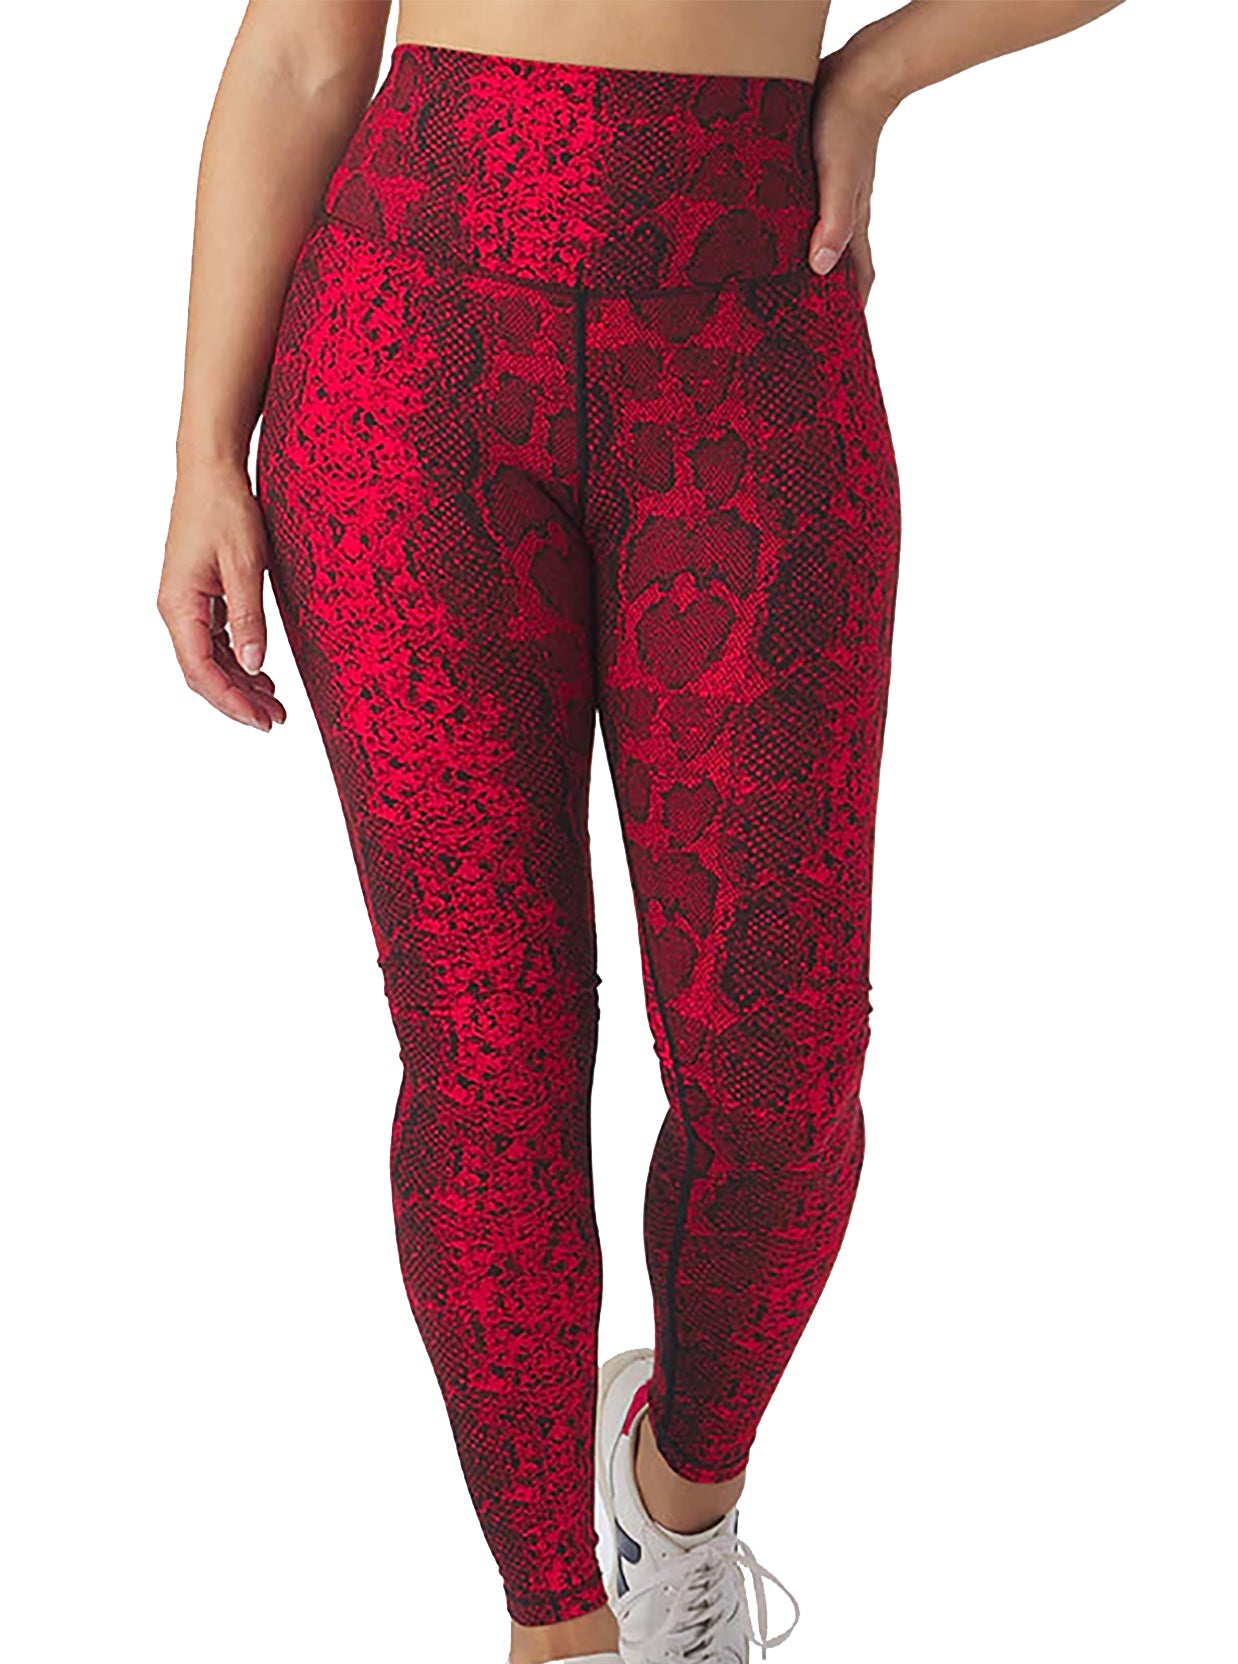 Sultry Legging in Gator